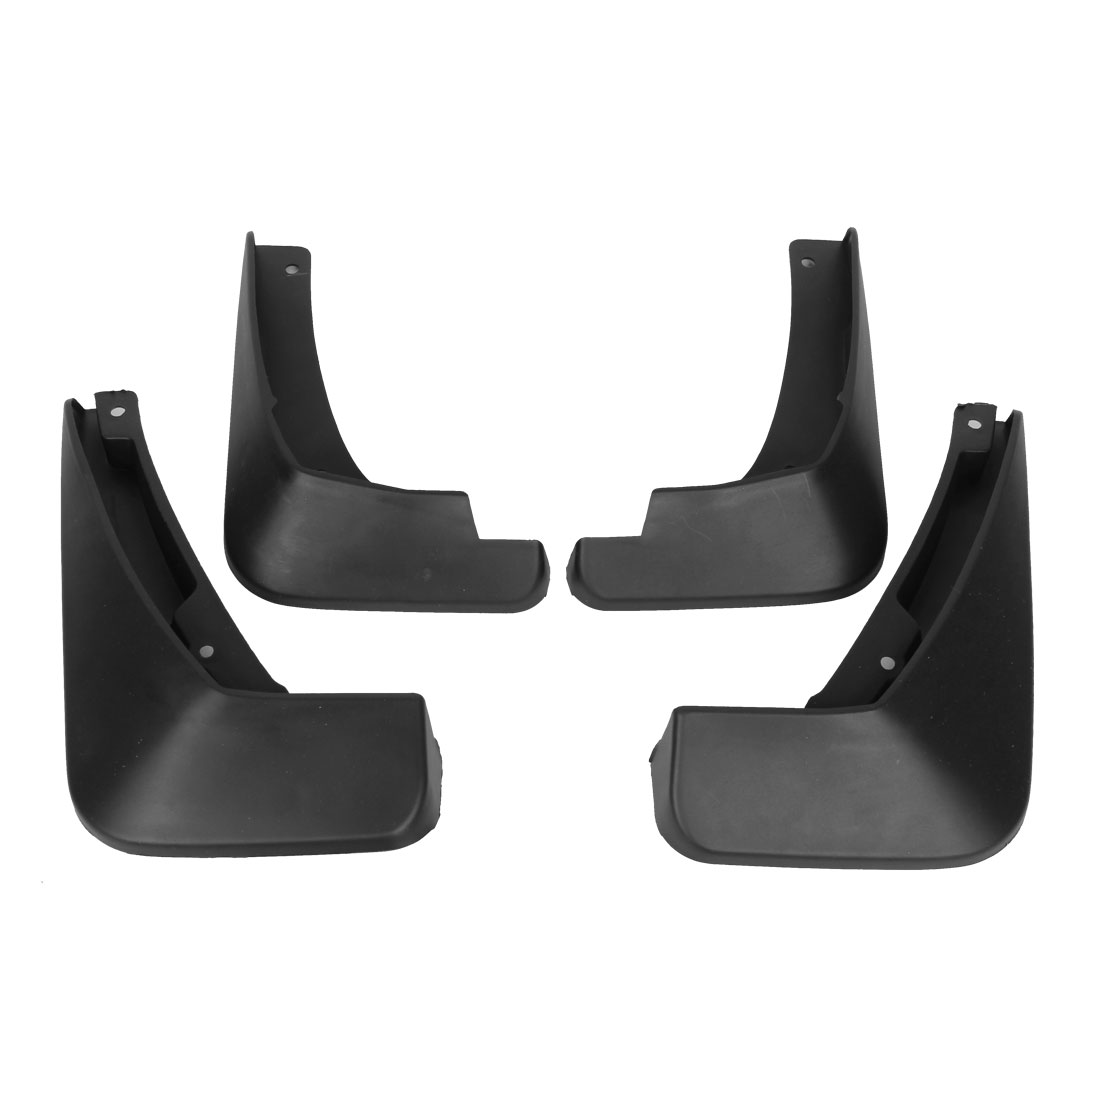 4PCS Front Rear Splash Guards Plastic Mud Flaps Set for 2015 Chevrolet Cruze